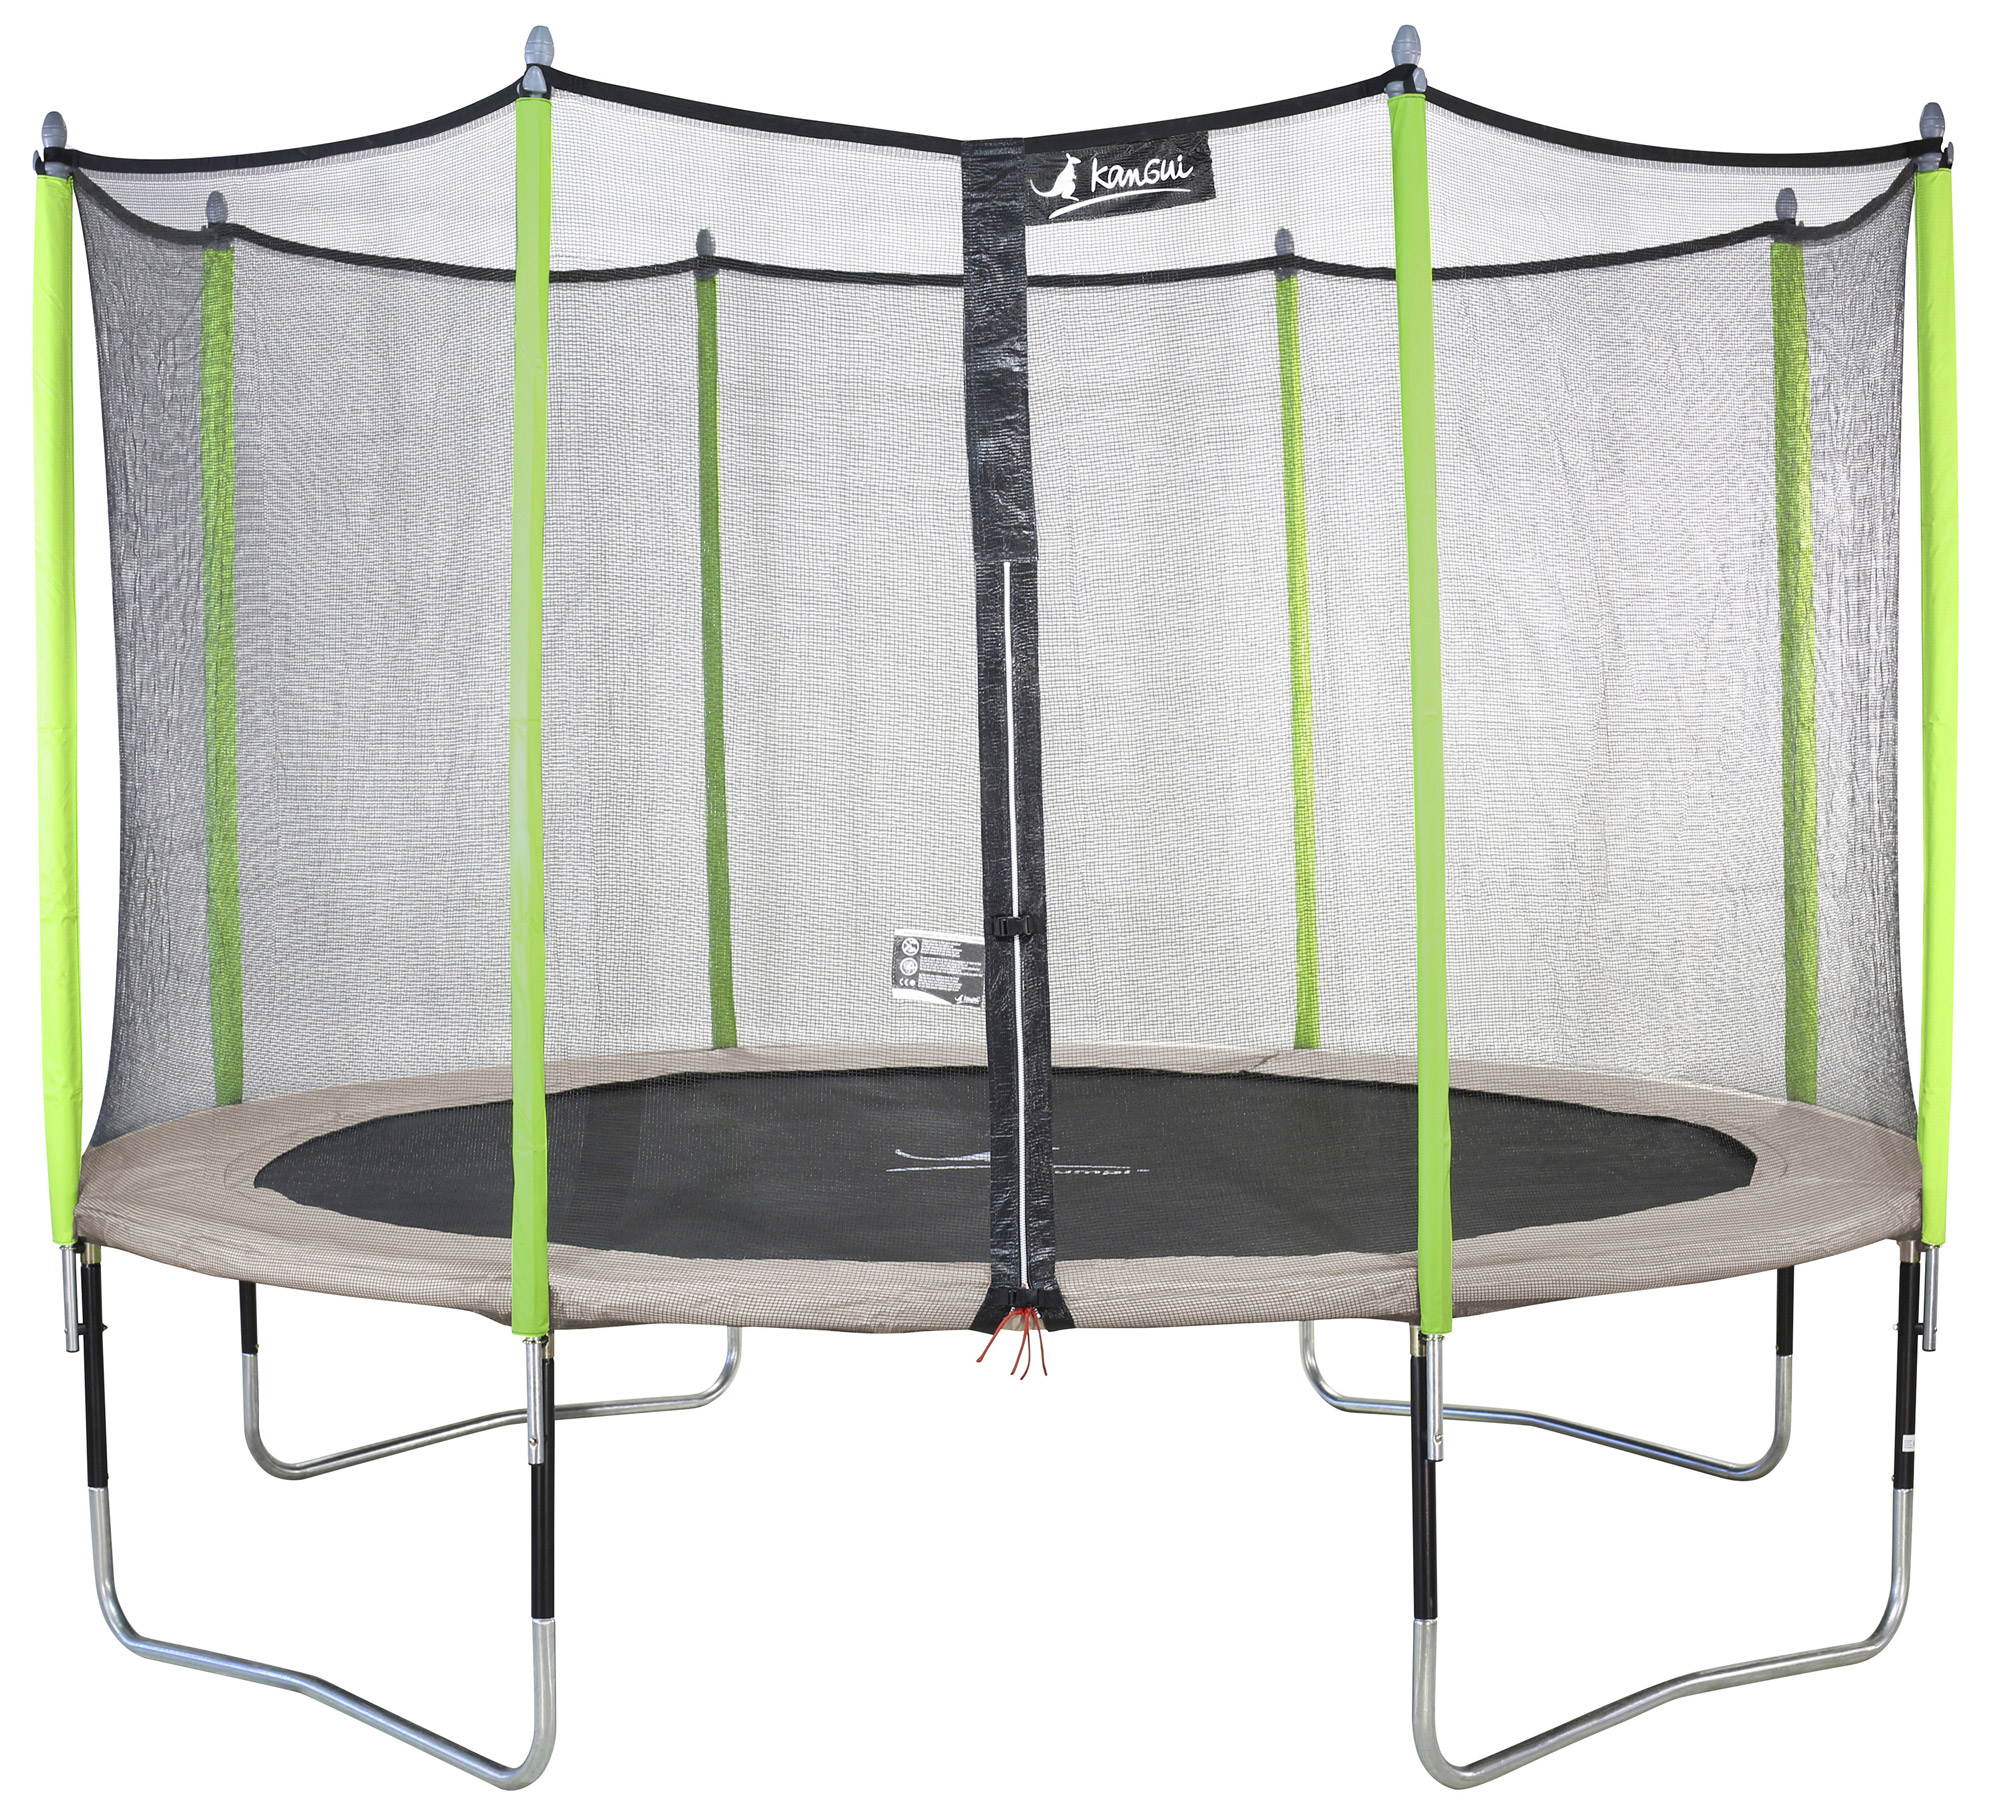 kangui trampoline de jardin 305 360 430 cm filet de s curit jumpi zen ebay. Black Bedroom Furniture Sets. Home Design Ideas